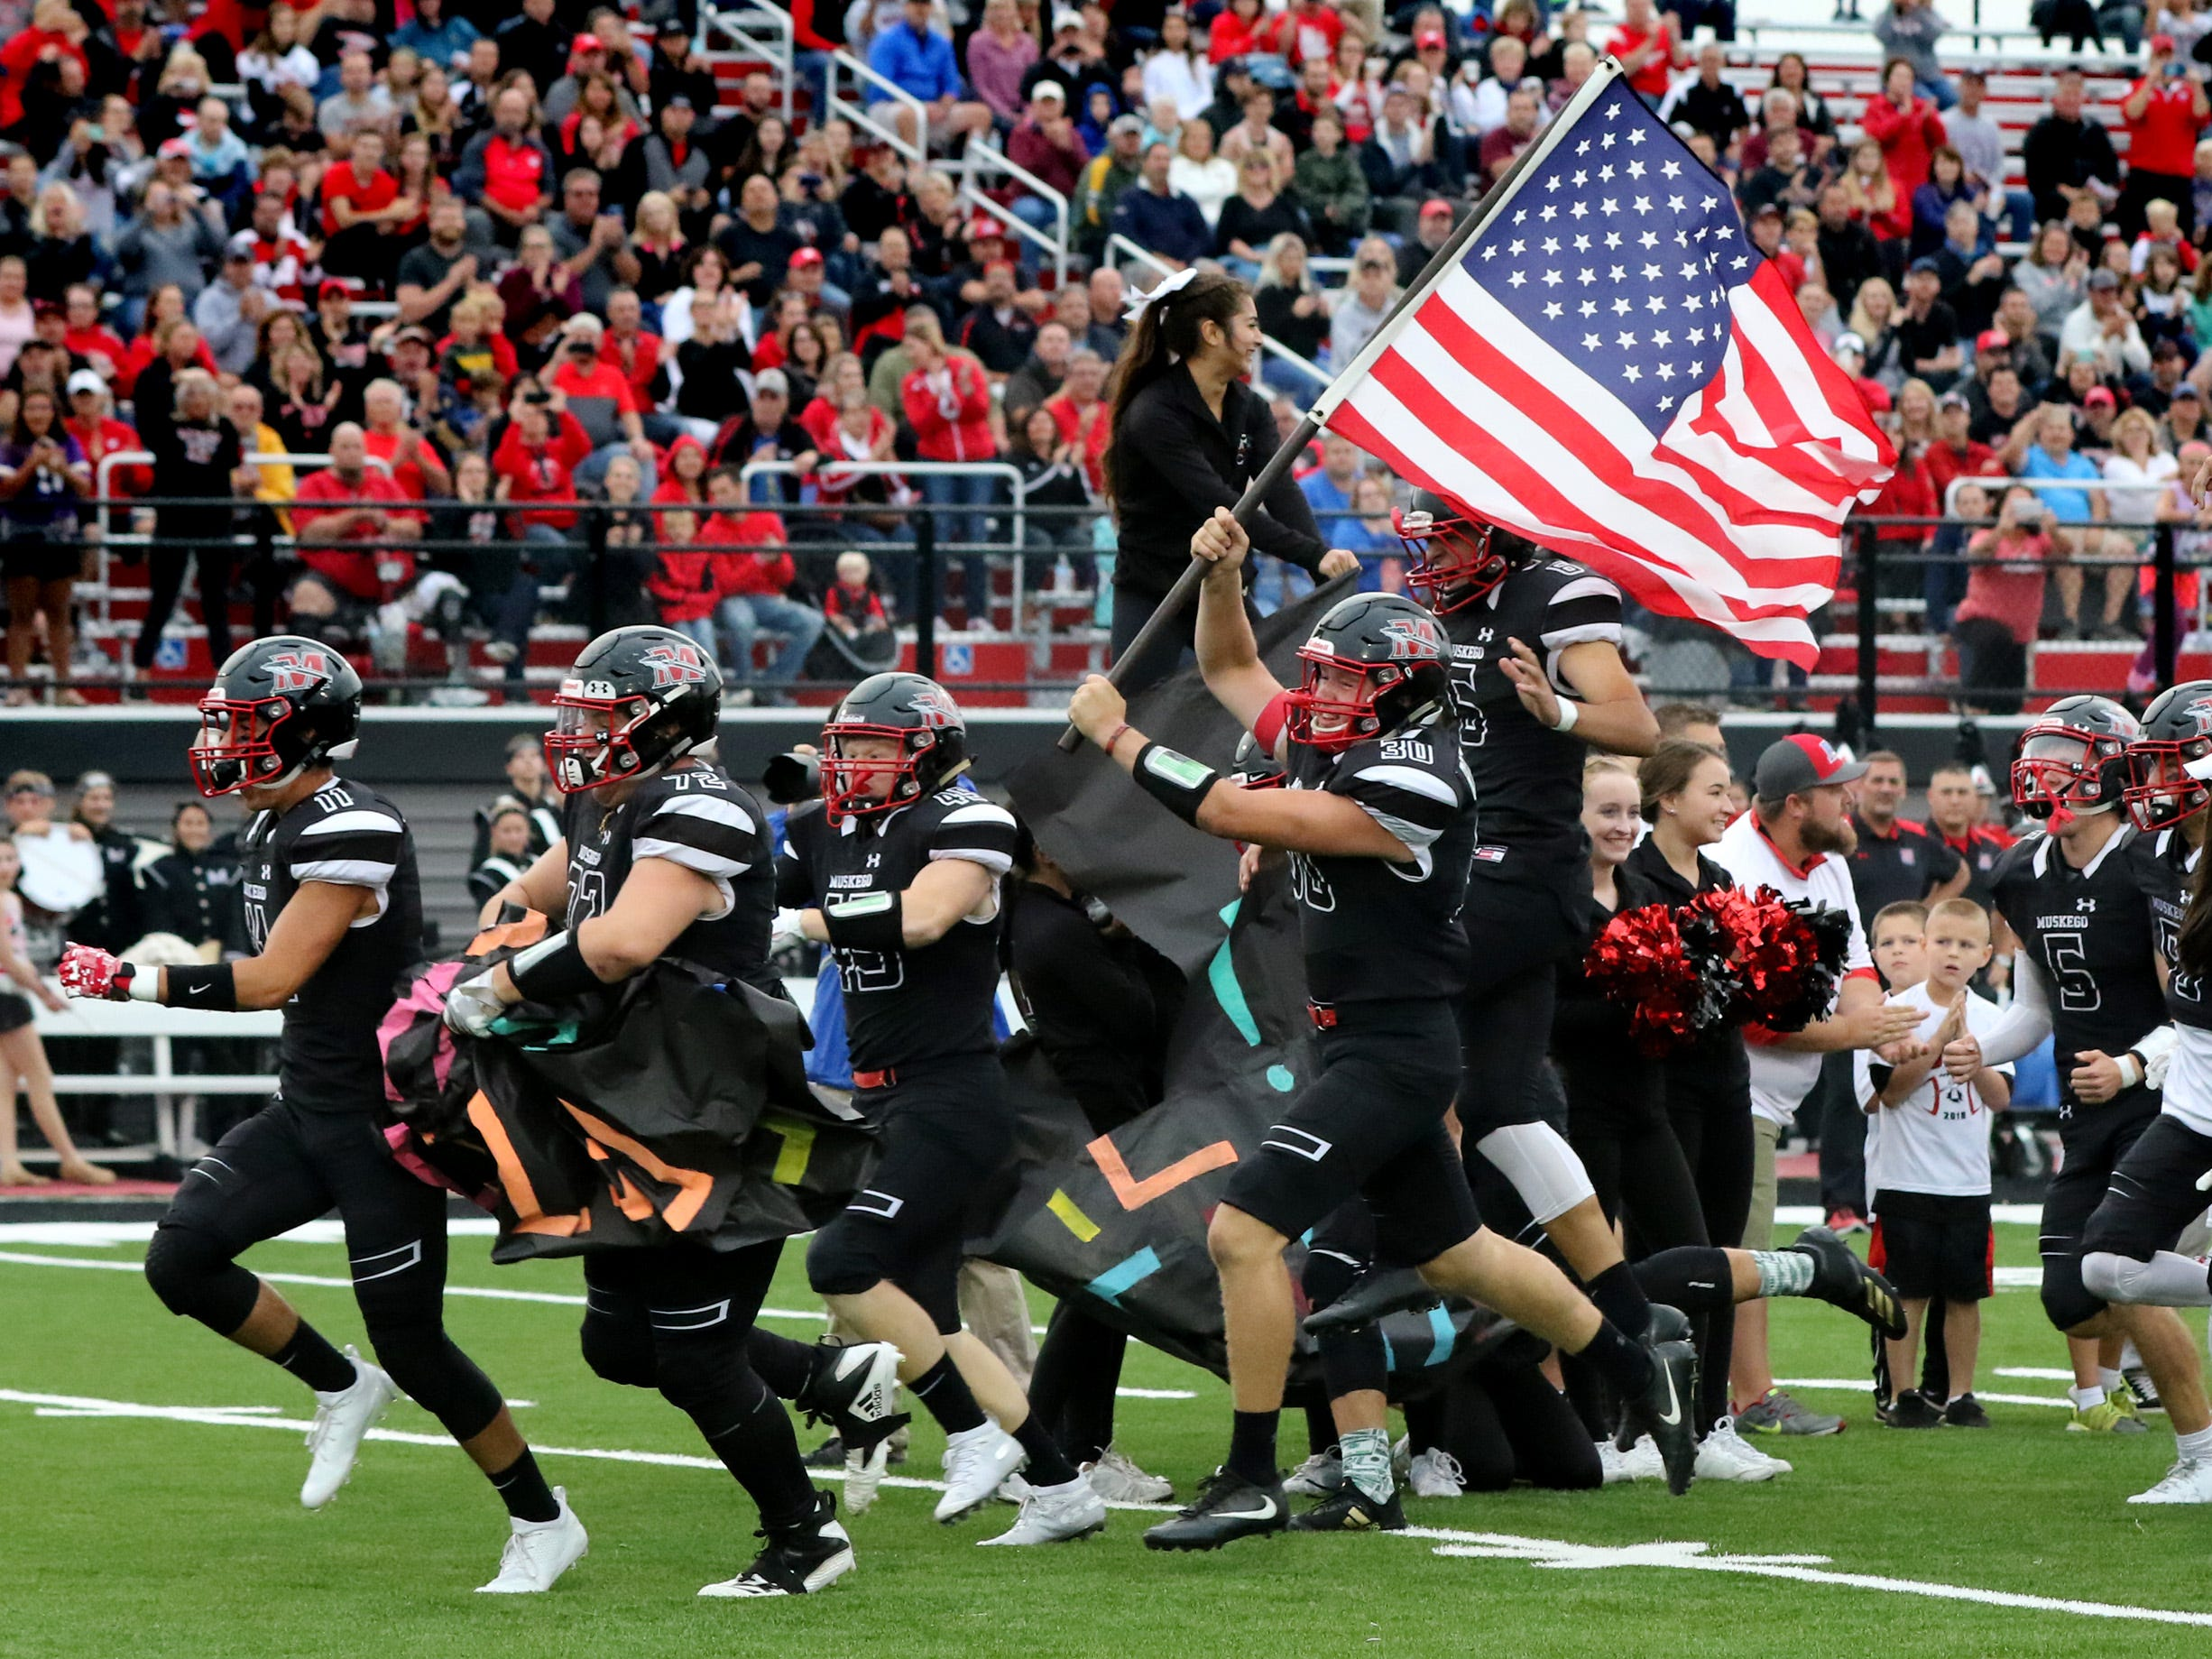 Muskego charges on to the field before its game at home against Arrowhead on Aug 24.